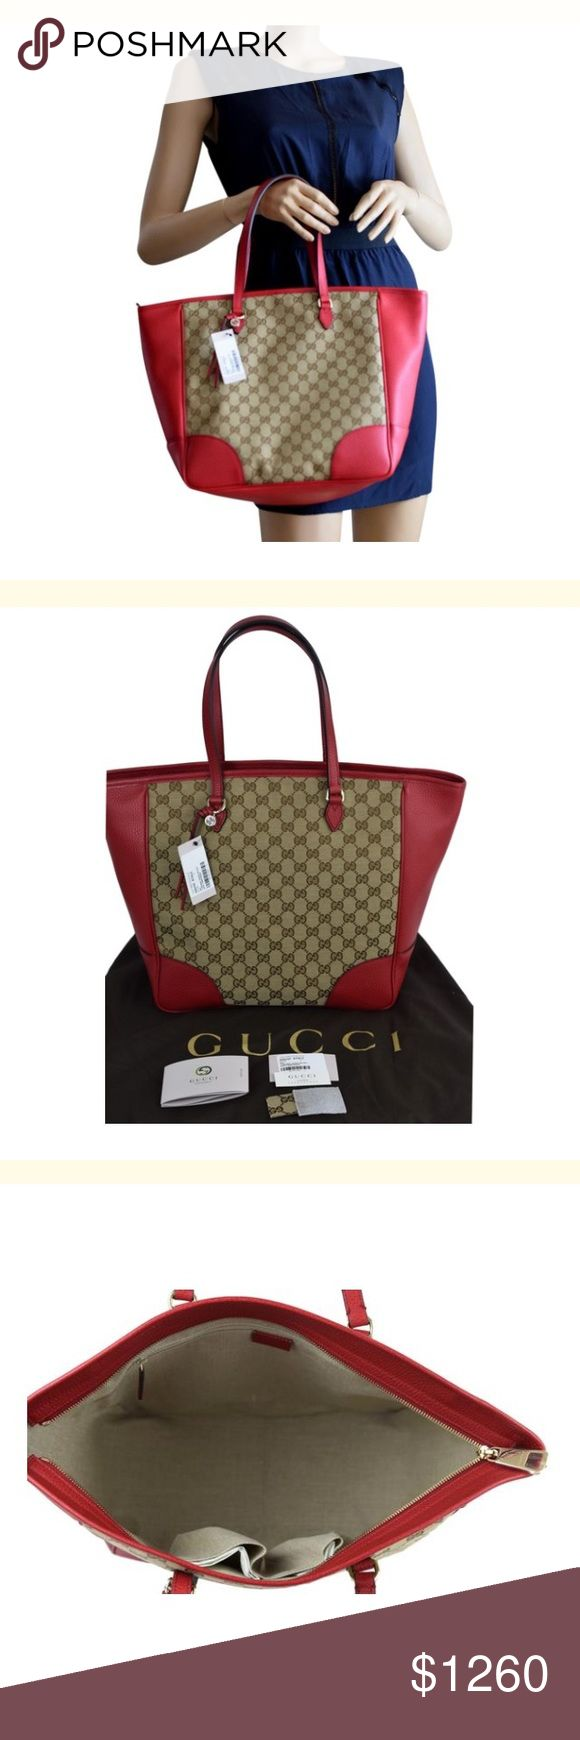 Gg Canvas red leather red tote bag. NEW Gucci Original GG Canvas with Red Leather !  Canvas lined interior with three pockets. 100% authentic, comes directly from Gucci.  Made in Italy  Includes Dust bag, controllato card and care card     Will ship right away! 2 day shipping - 3 days to West Coast! Gucci Bags Totes